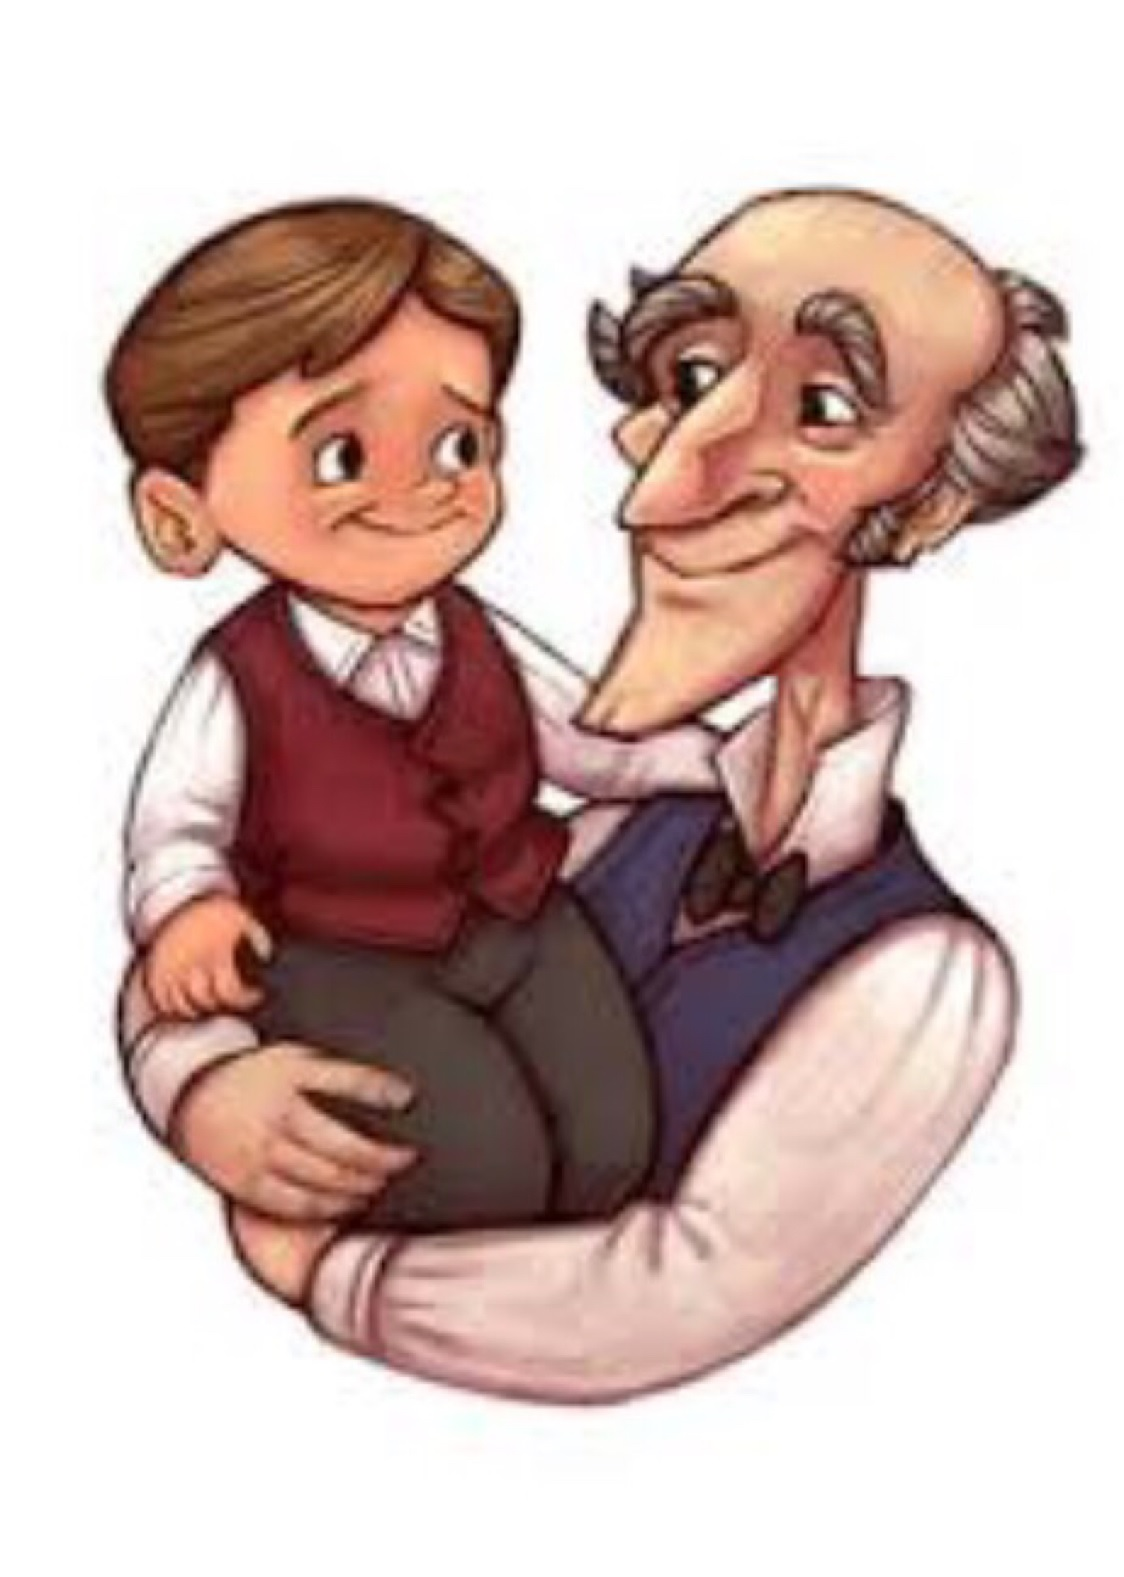 Christmas Carol Scrooge Drawing.Loralee Evans Author Tiny Tim In A Christmas Carol